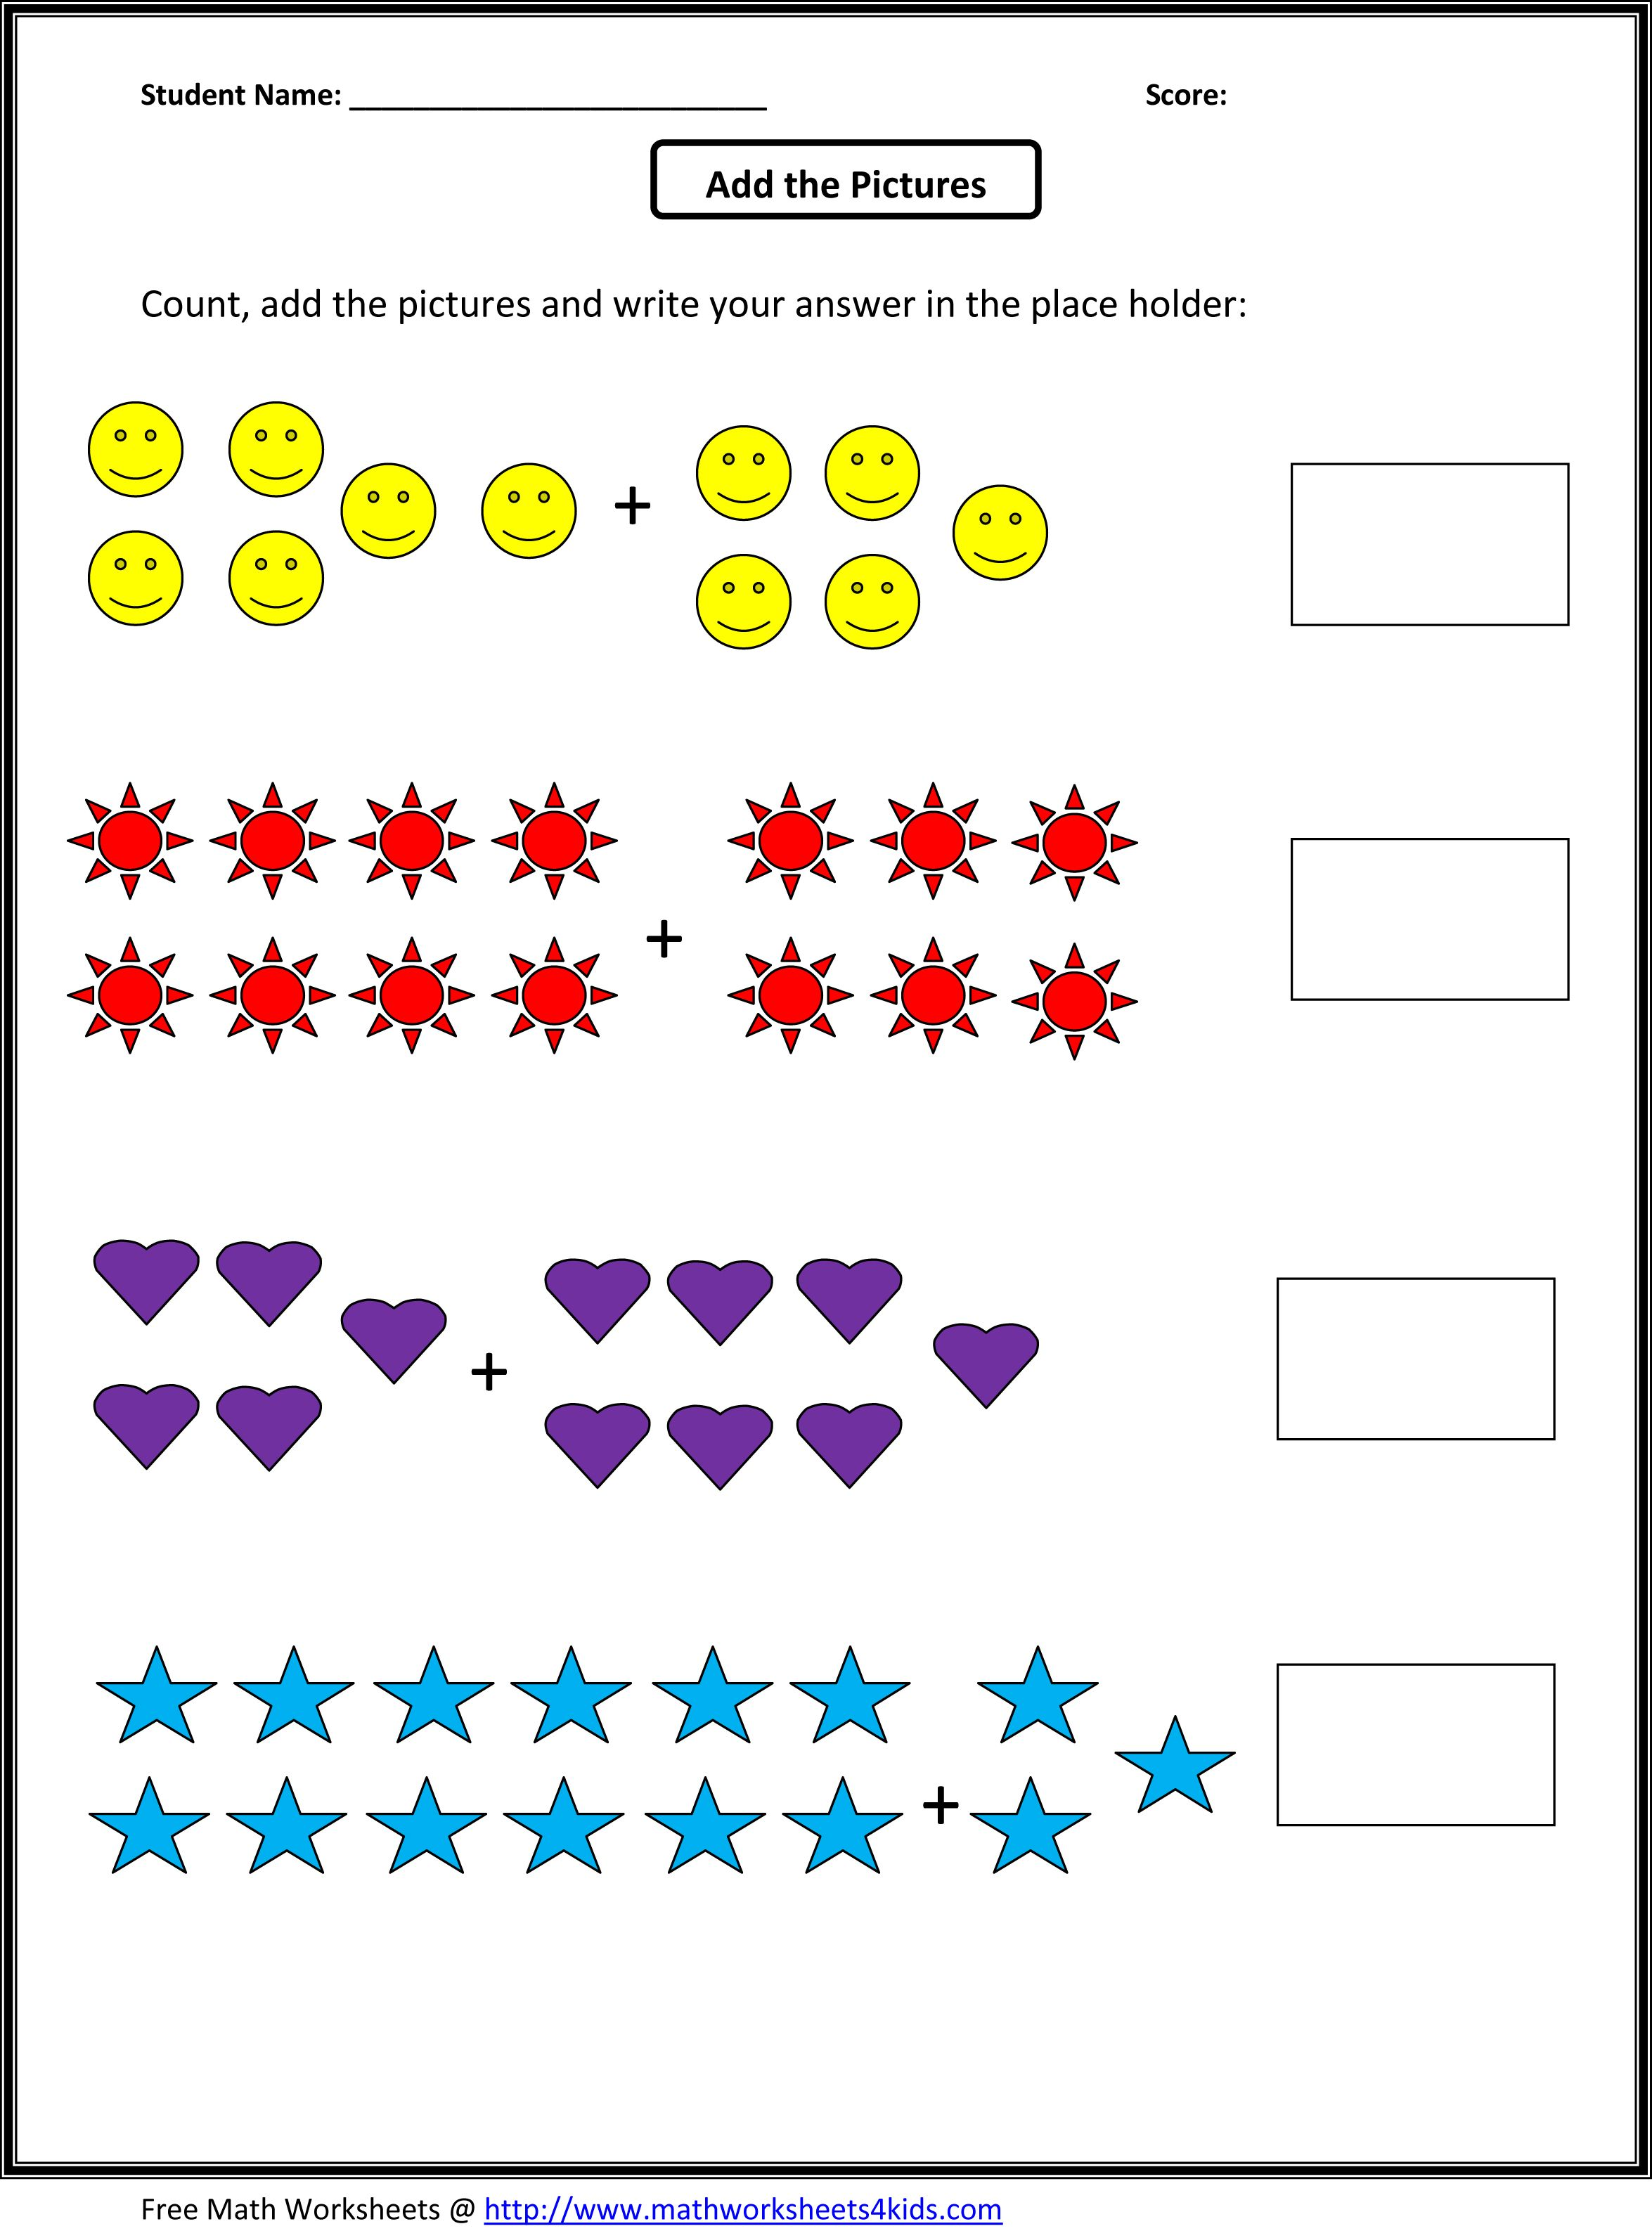 Aldiablosus  Outstanding Worksheet For Math Grade   Coffemix With Inspiring  Images About School On Pinterest  Mental Maths Worksheets  With Amazing Fourth Grade Social Studies Worksheets Also Tens And Units Worksheets Grade  In Addition Frequency Tables Worksheets And Worksheets For Grade  Math As Well As Propaganda Worksheet Additionally Plural Worksheets For Grade  From Coffemixcom With Aldiablosus  Inspiring Worksheet For Math Grade   Coffemix With Amazing  Images About School On Pinterest  Mental Maths Worksheets  And Outstanding Fourth Grade Social Studies Worksheets Also Tens And Units Worksheets Grade  In Addition Frequency Tables Worksheets From Coffemixcom